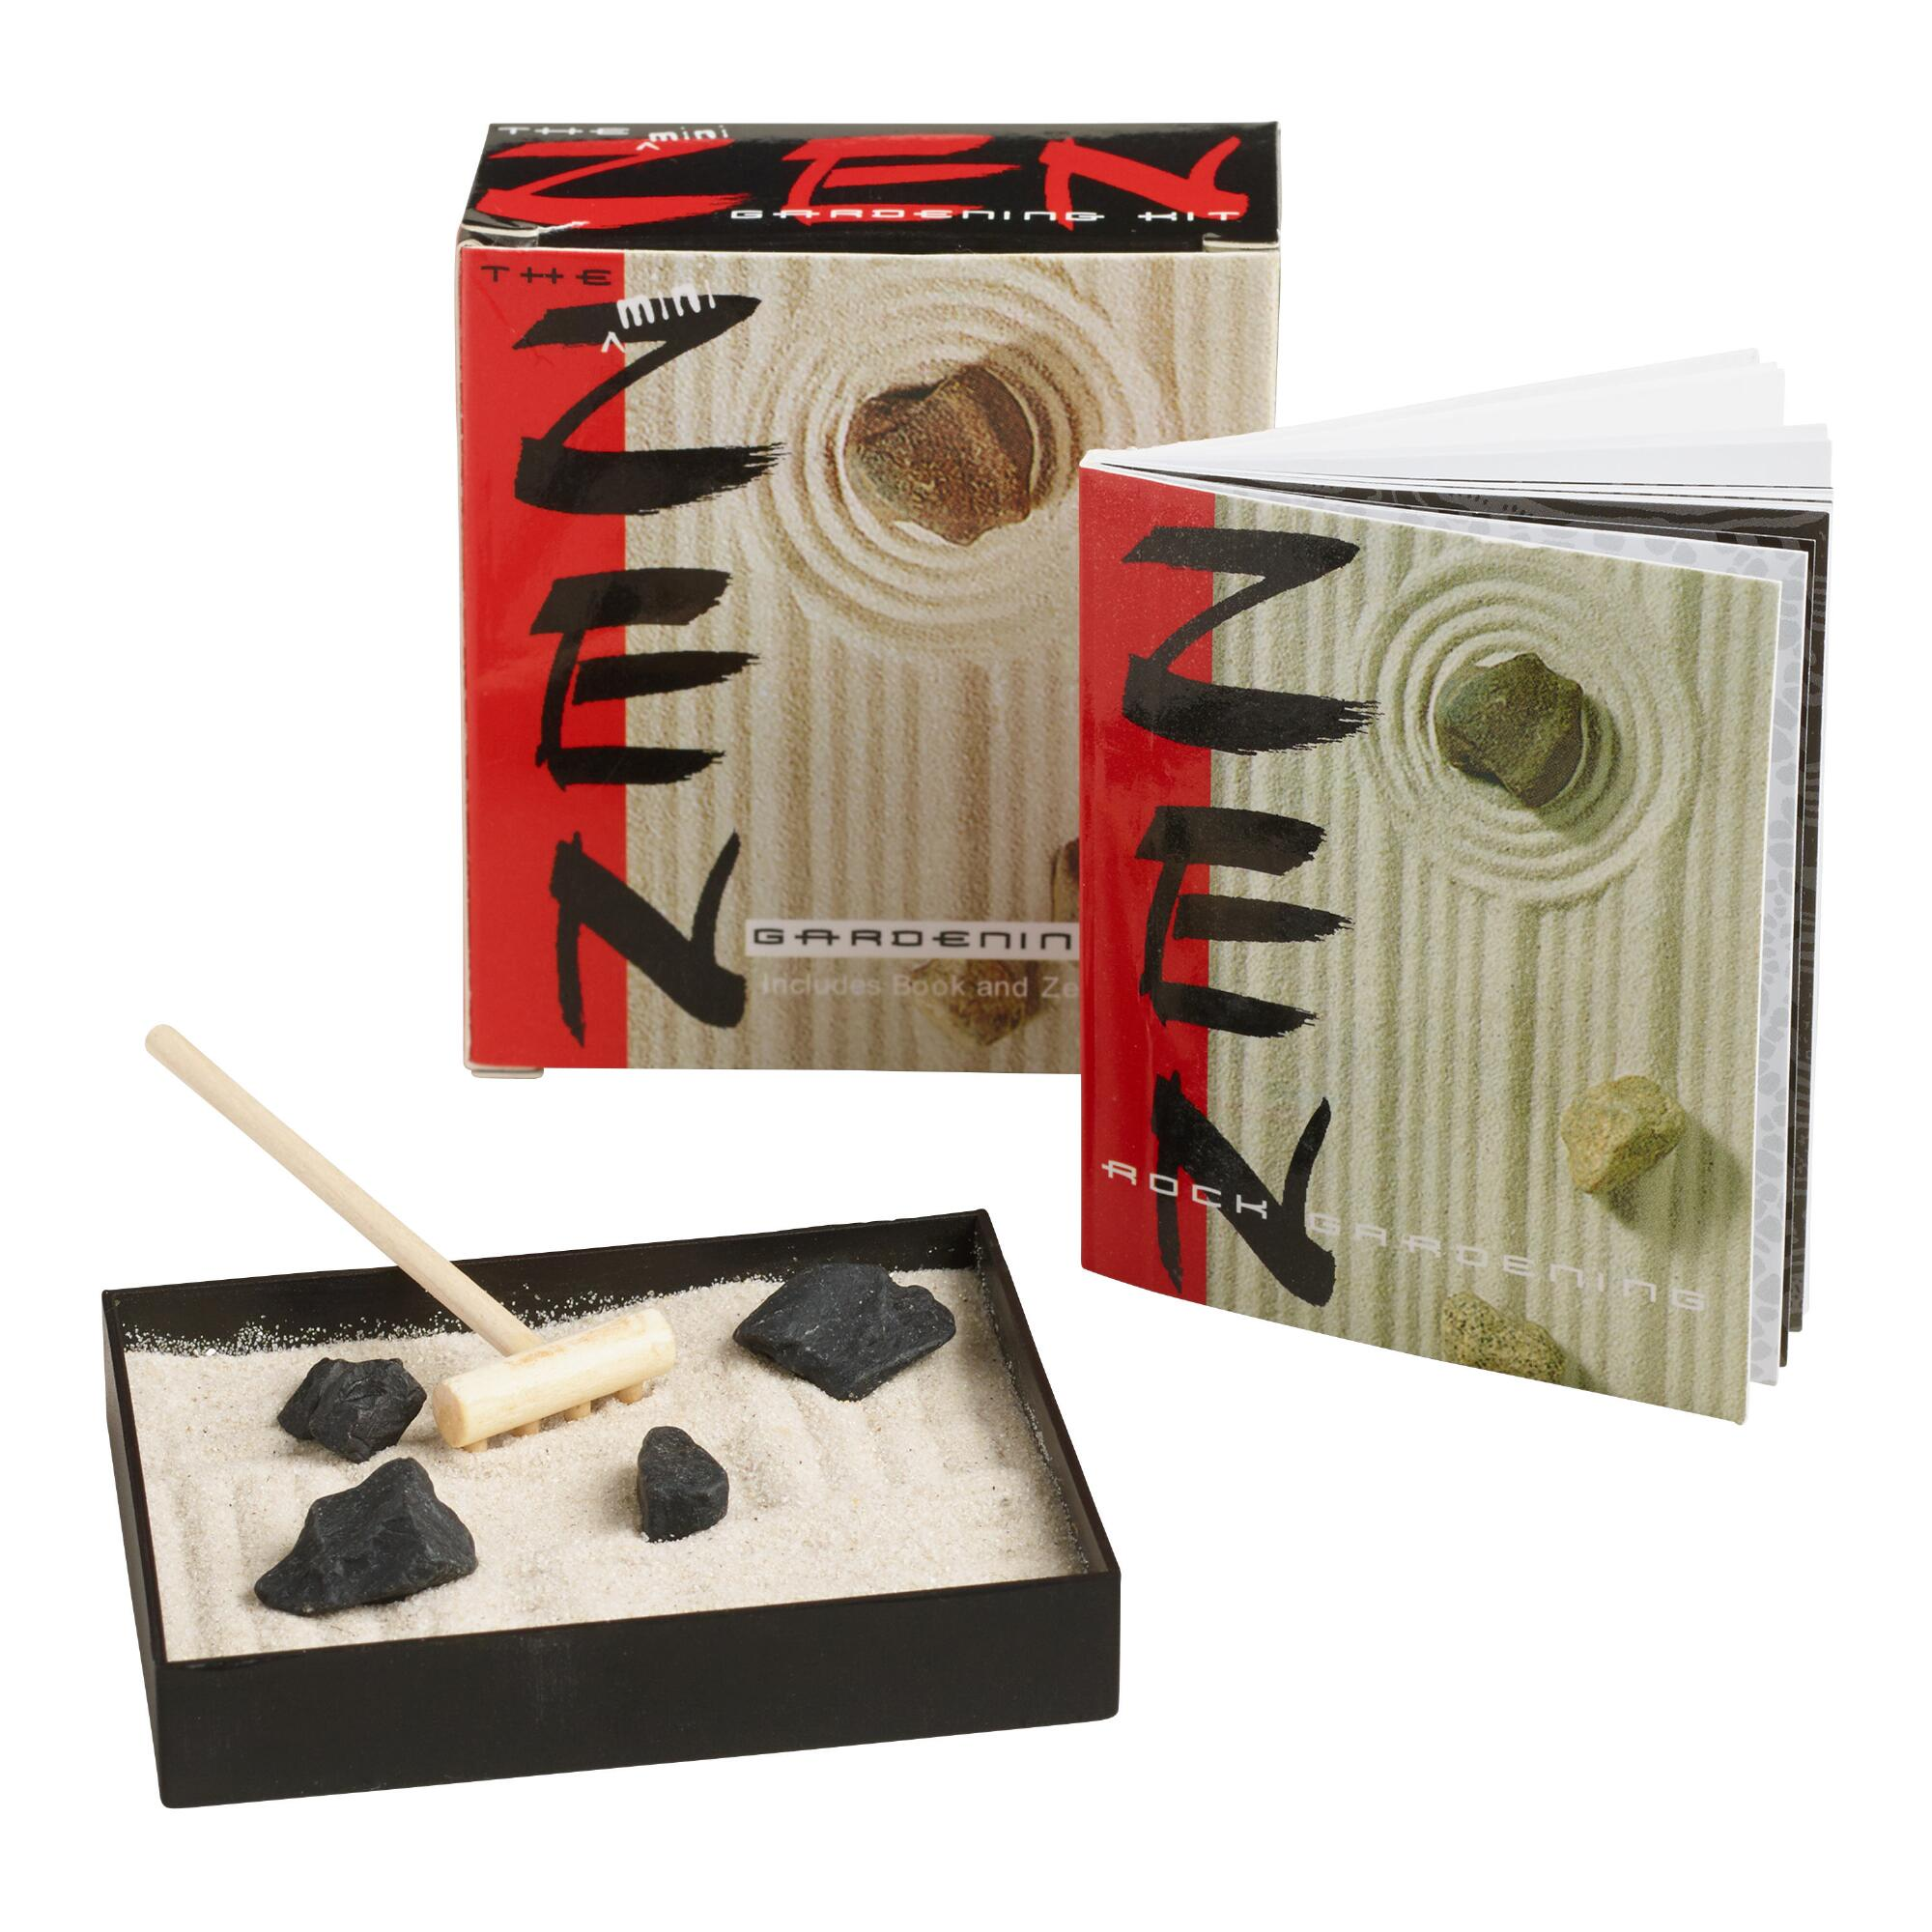 cost plus world market mini zen garden kit by world market shop your way online shopping. Black Bedroom Furniture Sets. Home Design Ideas